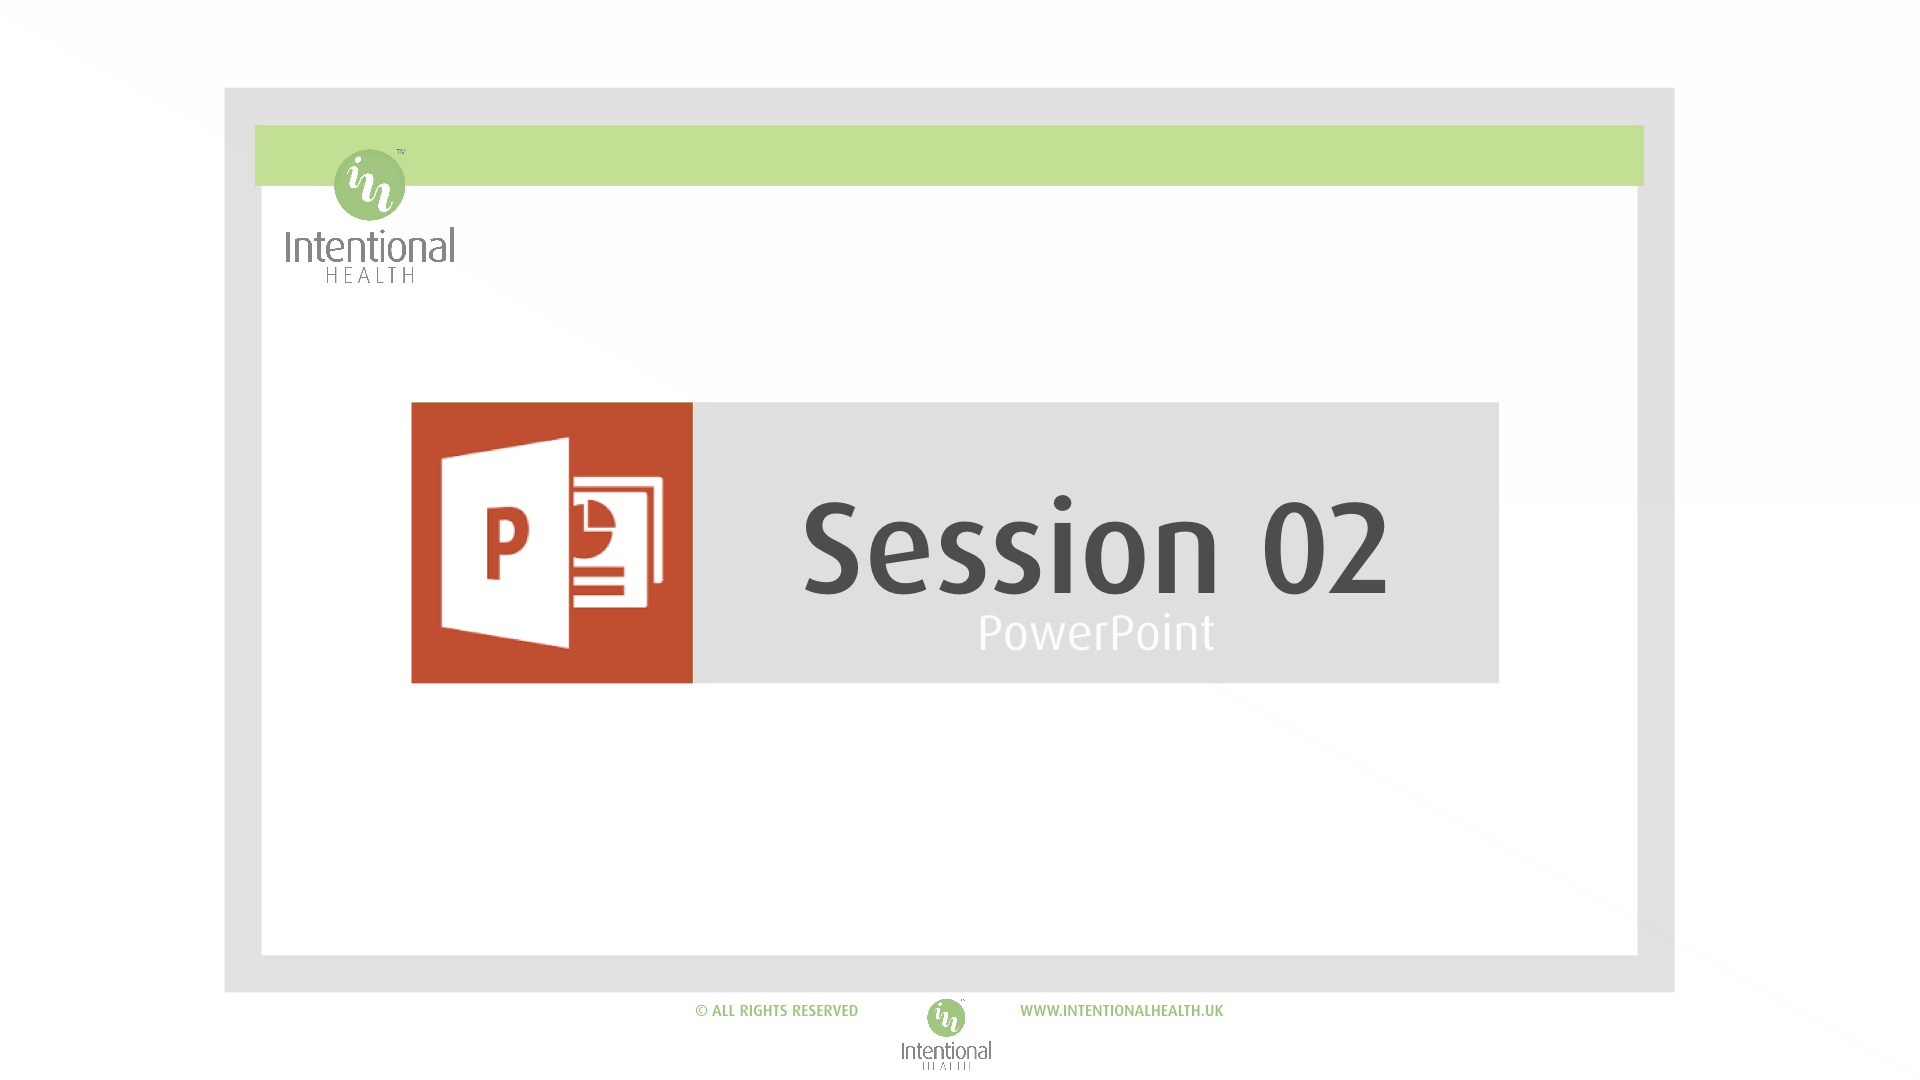 Session 02 Powerpoint